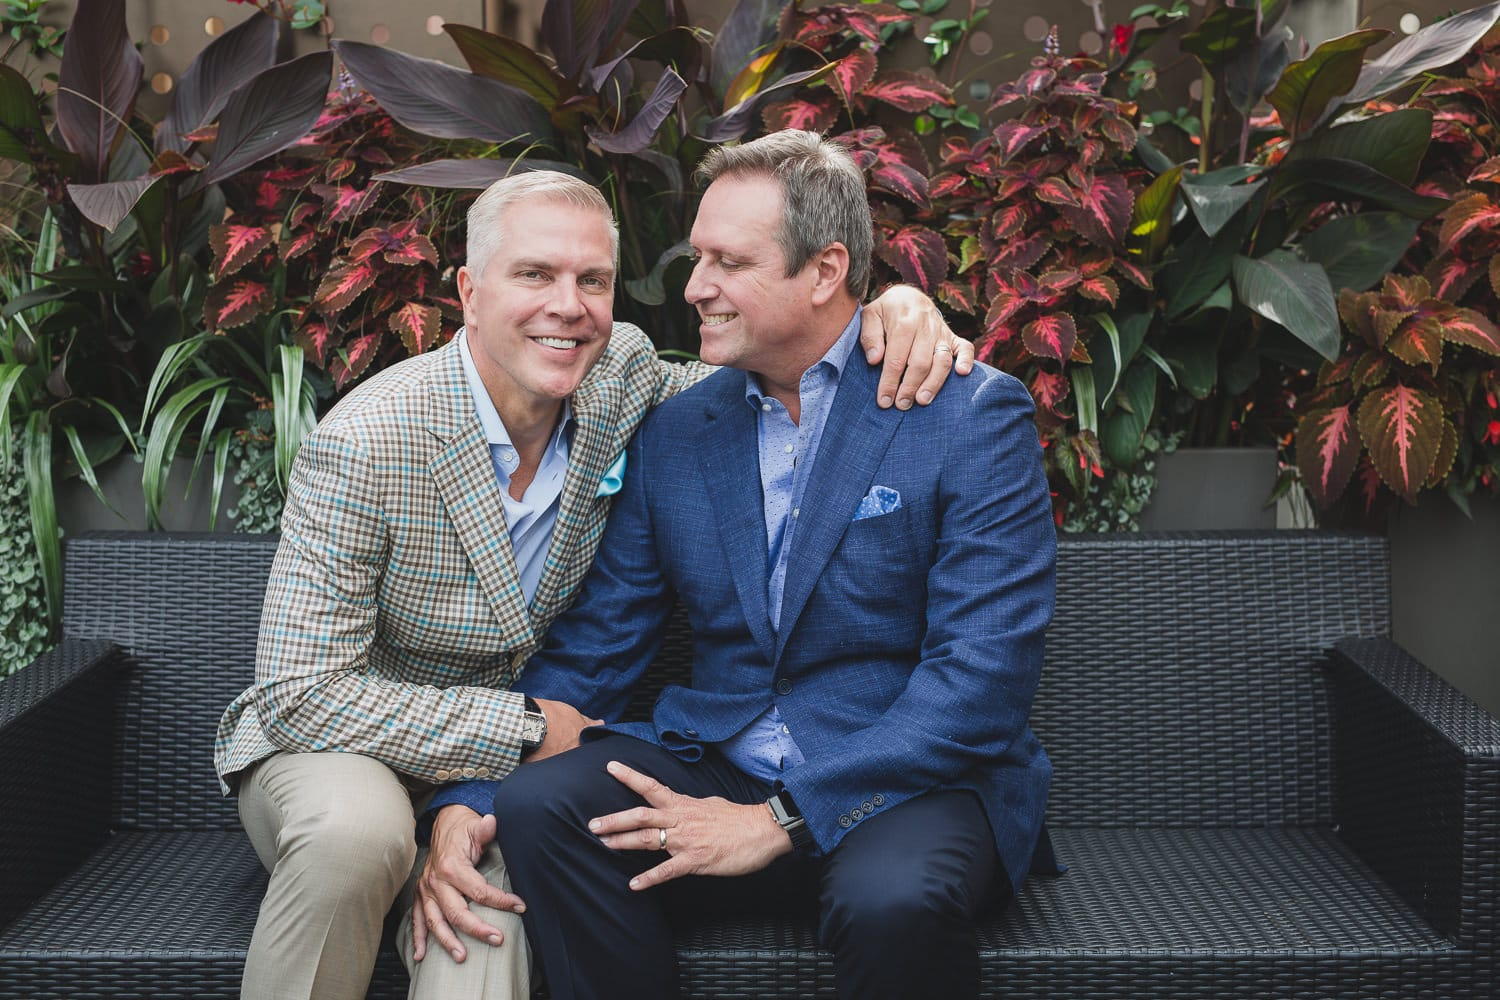 wedding couple portraits at lgbtq wedding in vancouver